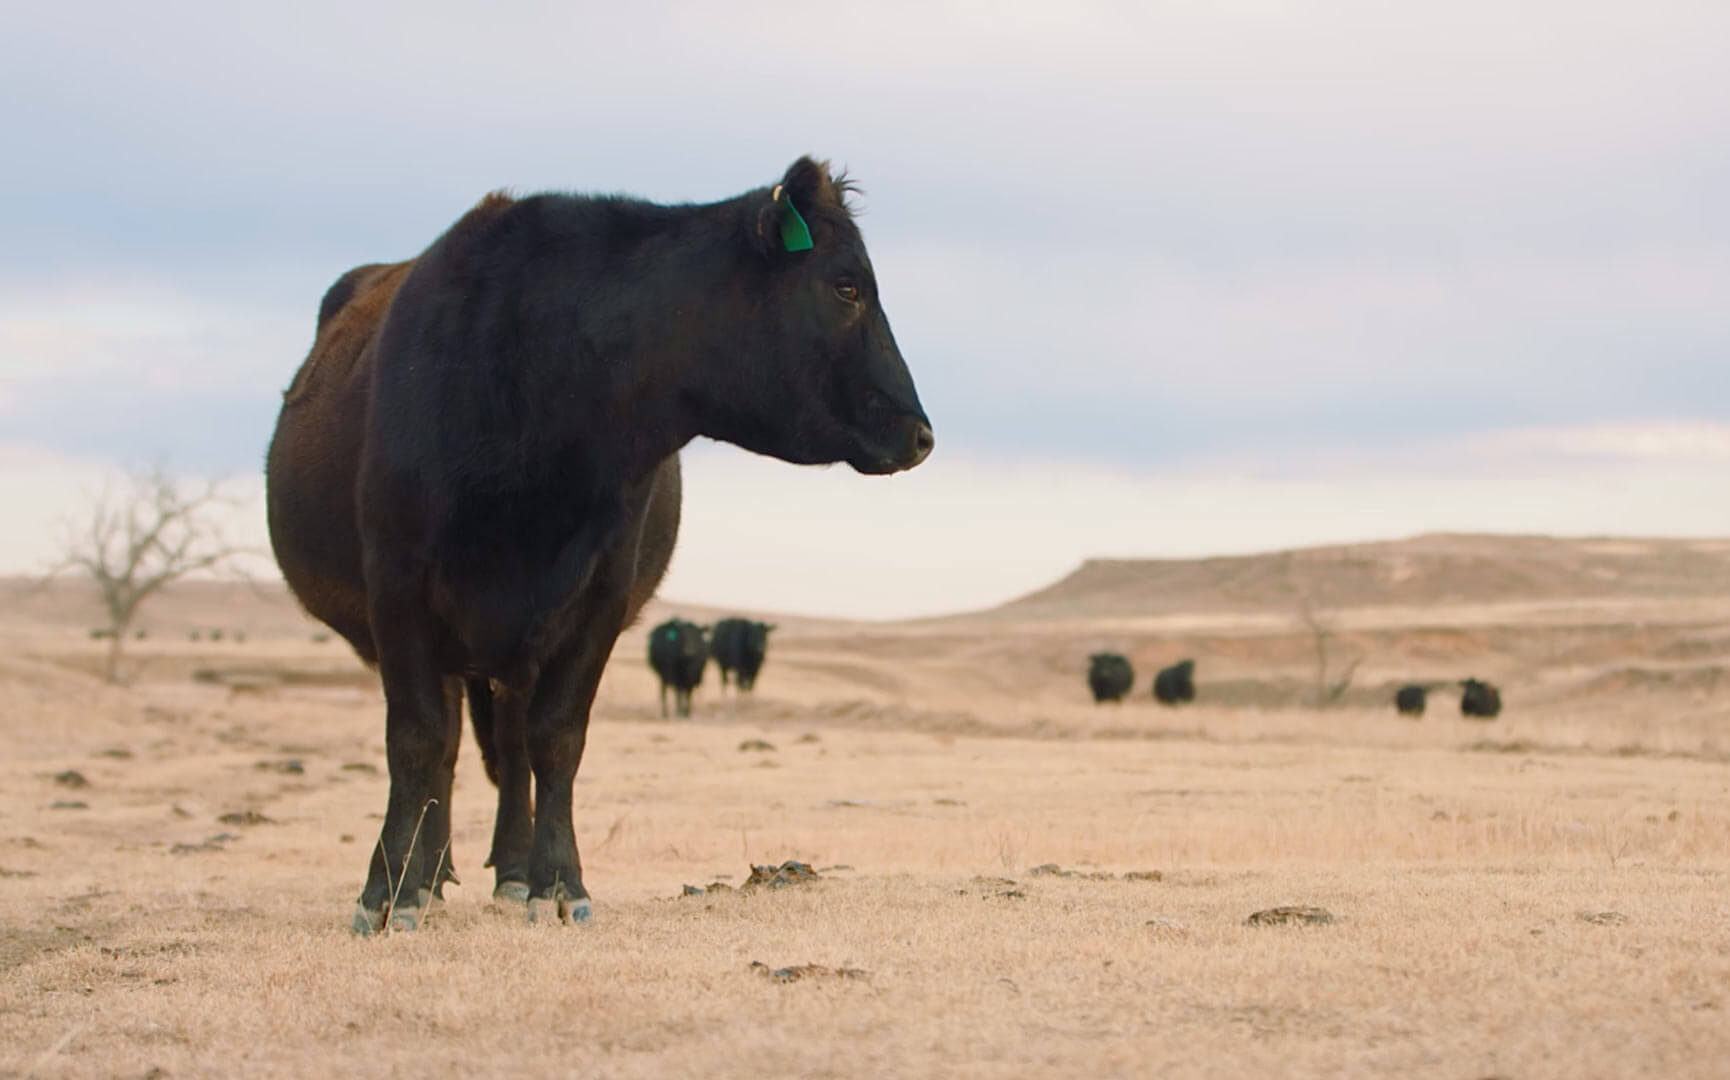 Large angus in foreground with smaller member in the herd in the distance against the dusty Texas plains.